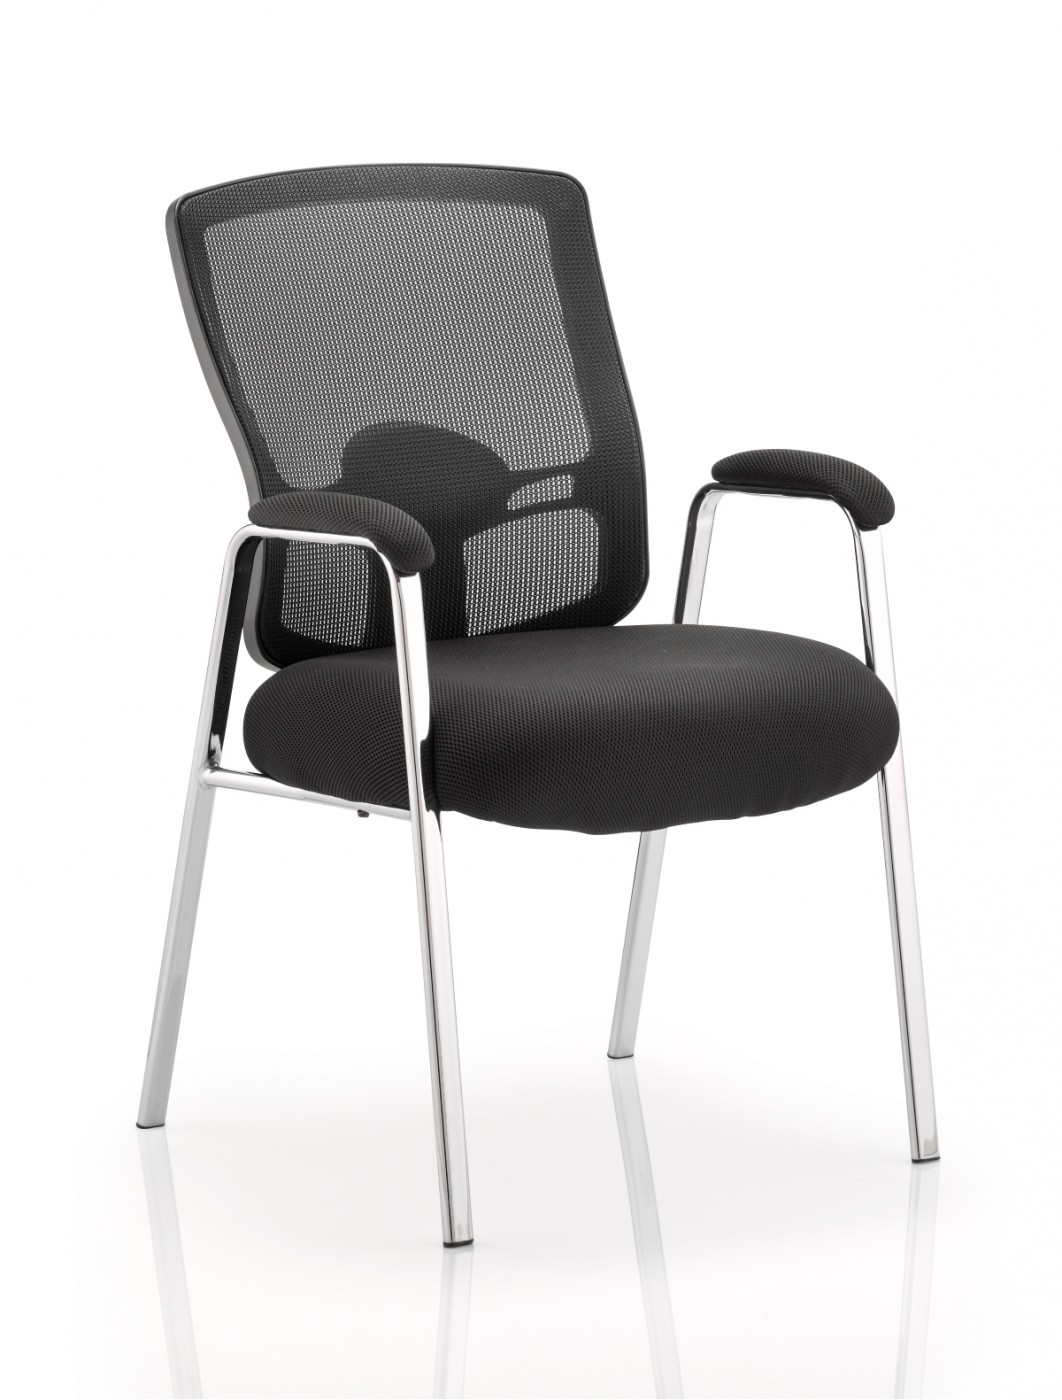 office chairs dynamic portland visitor chairs with arms br00011 rh 121officefurniture co uk buy cheap office visitor chairs Designer Office Chairs Visitor